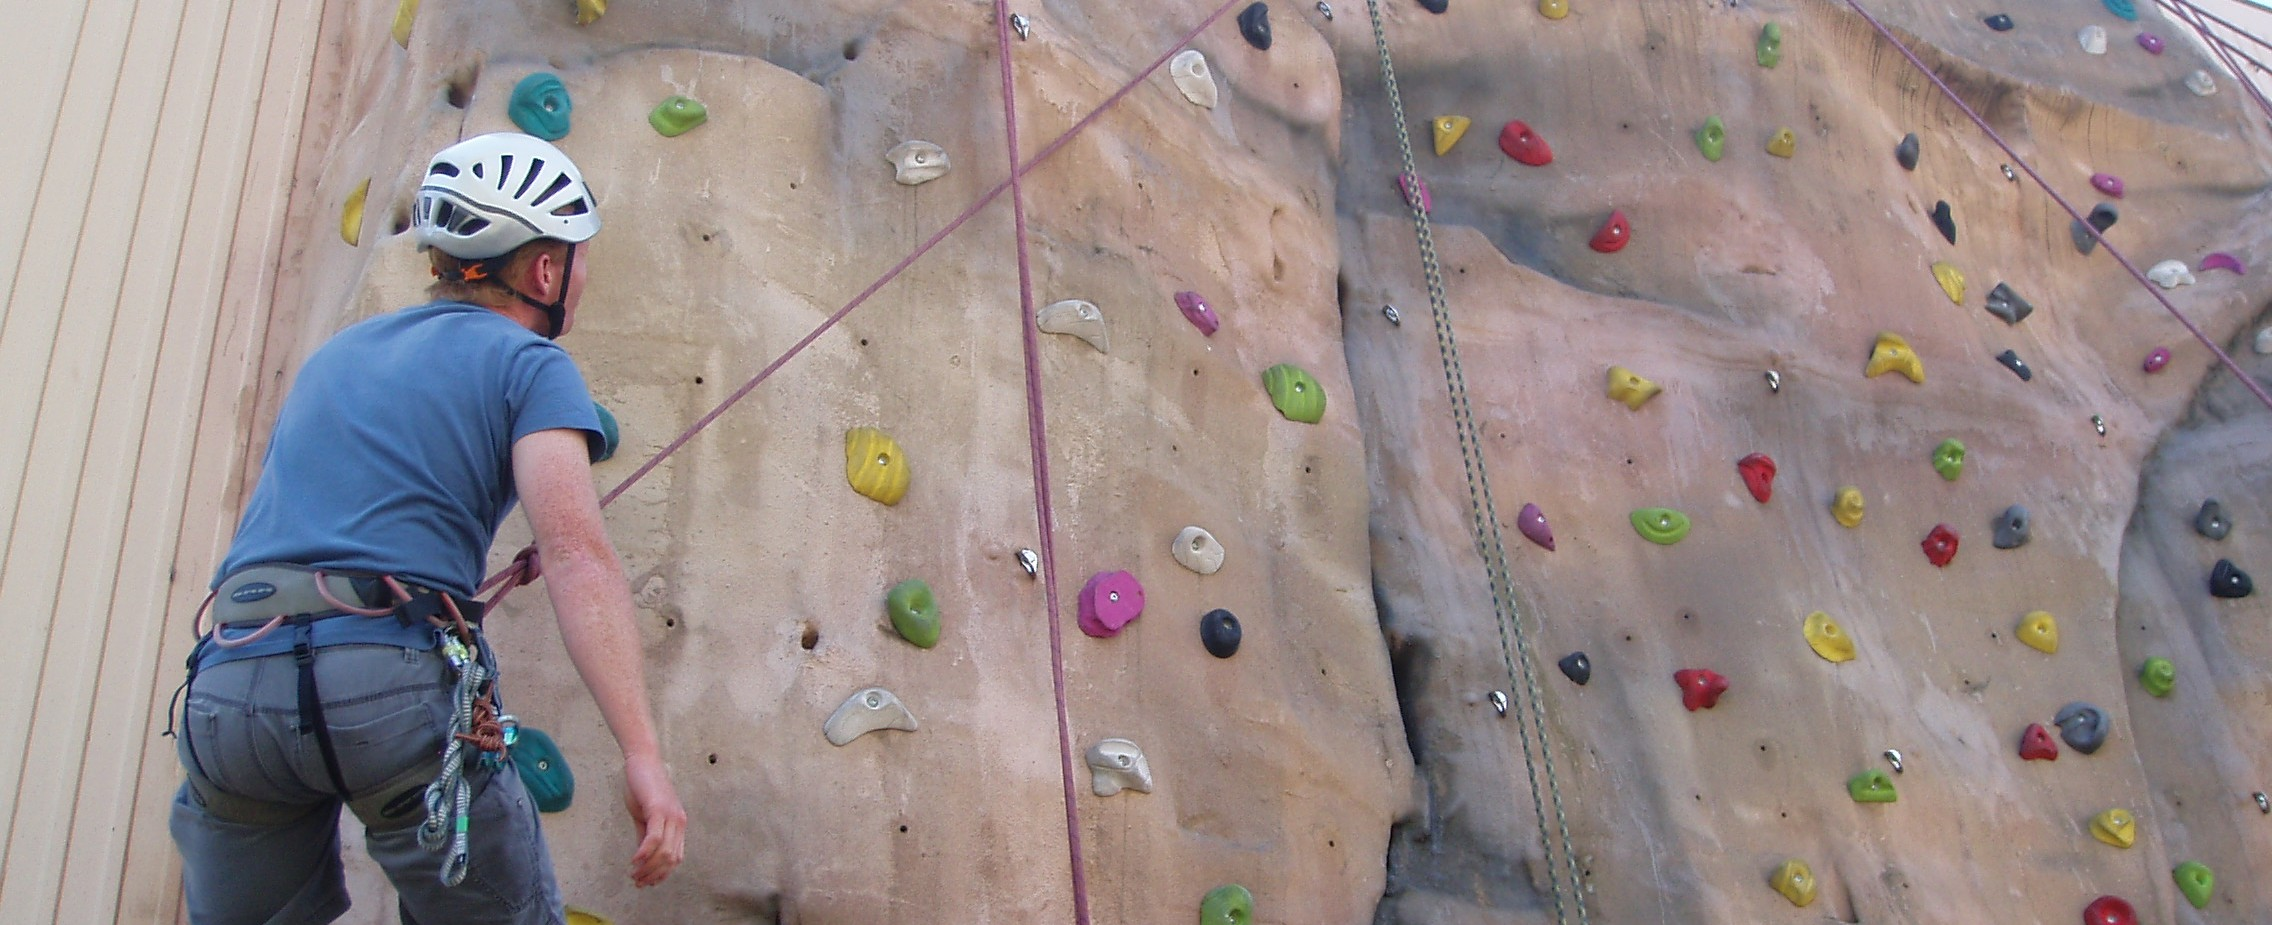 https://www.theadventurebrand.co.uk/climbing-wall-award-2/